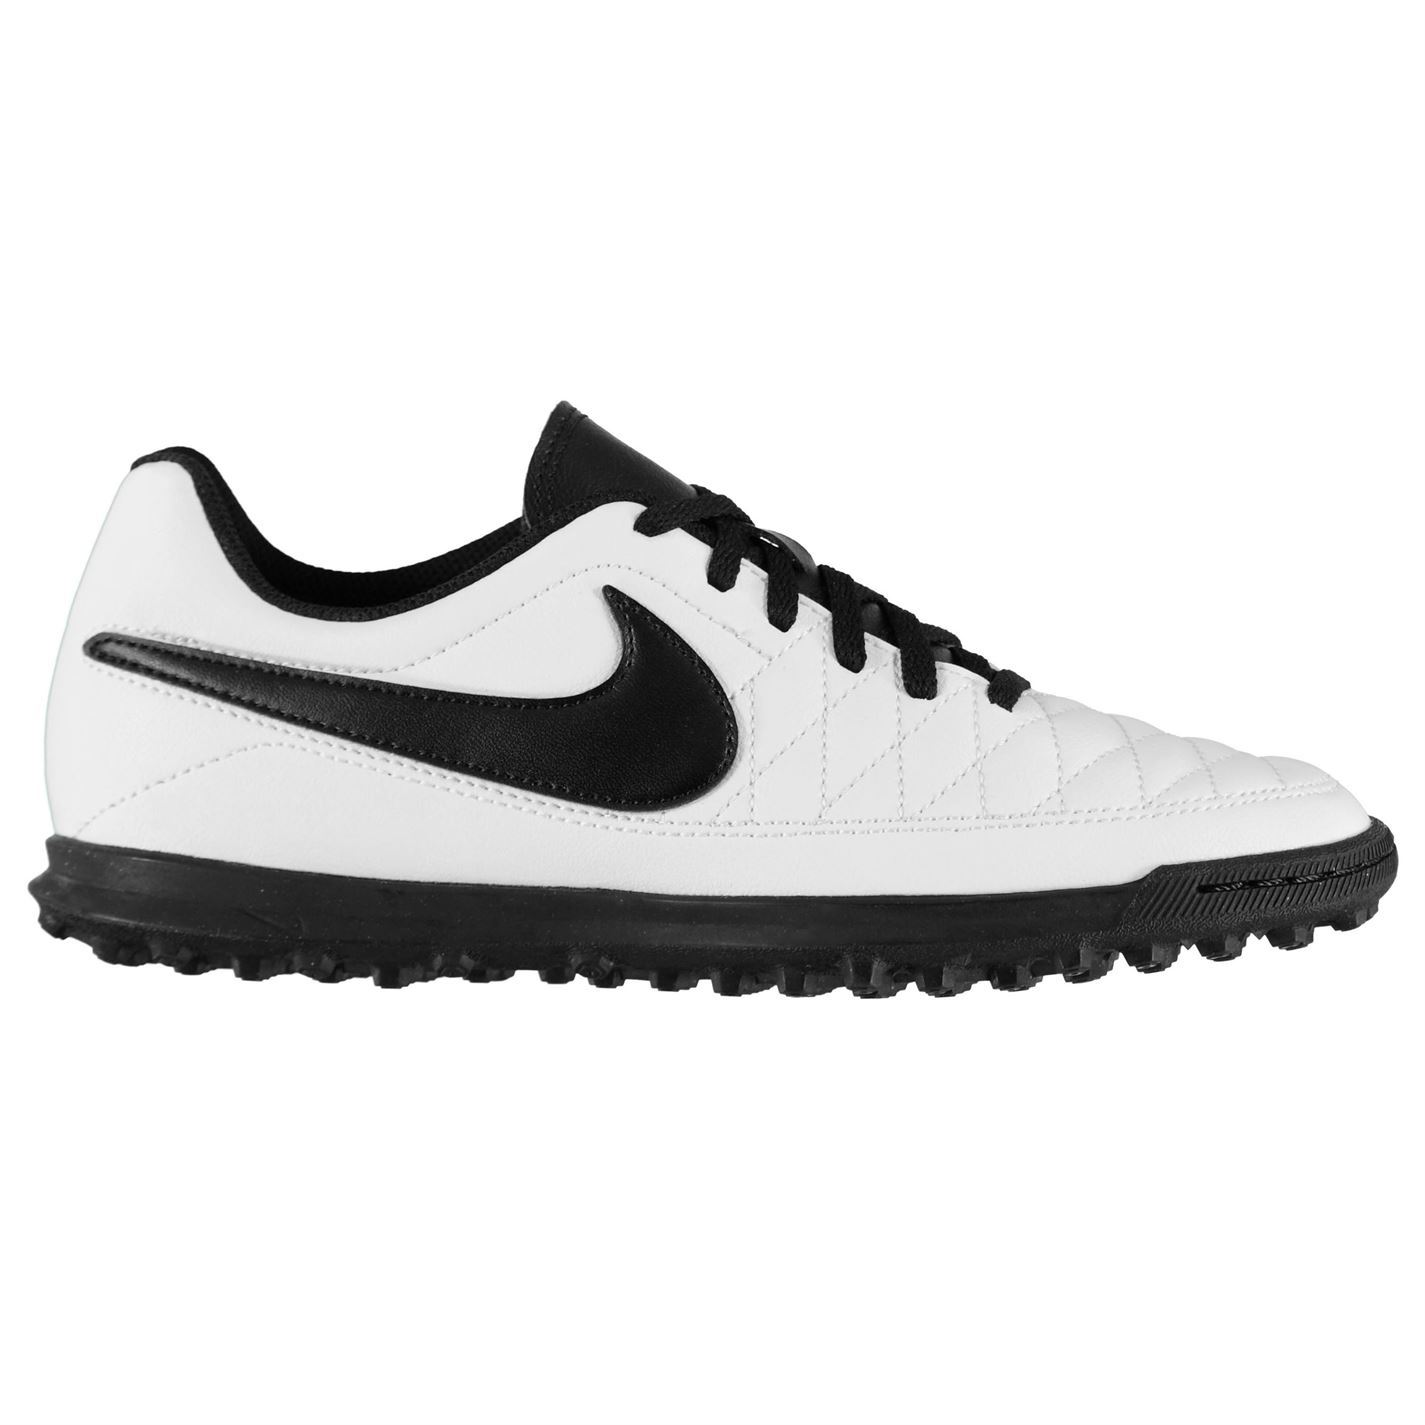 Nike-majestry-Astro-Turf-Football-Baskets-Pour-Homme-Football-Baskets-Chaussures miniature 5